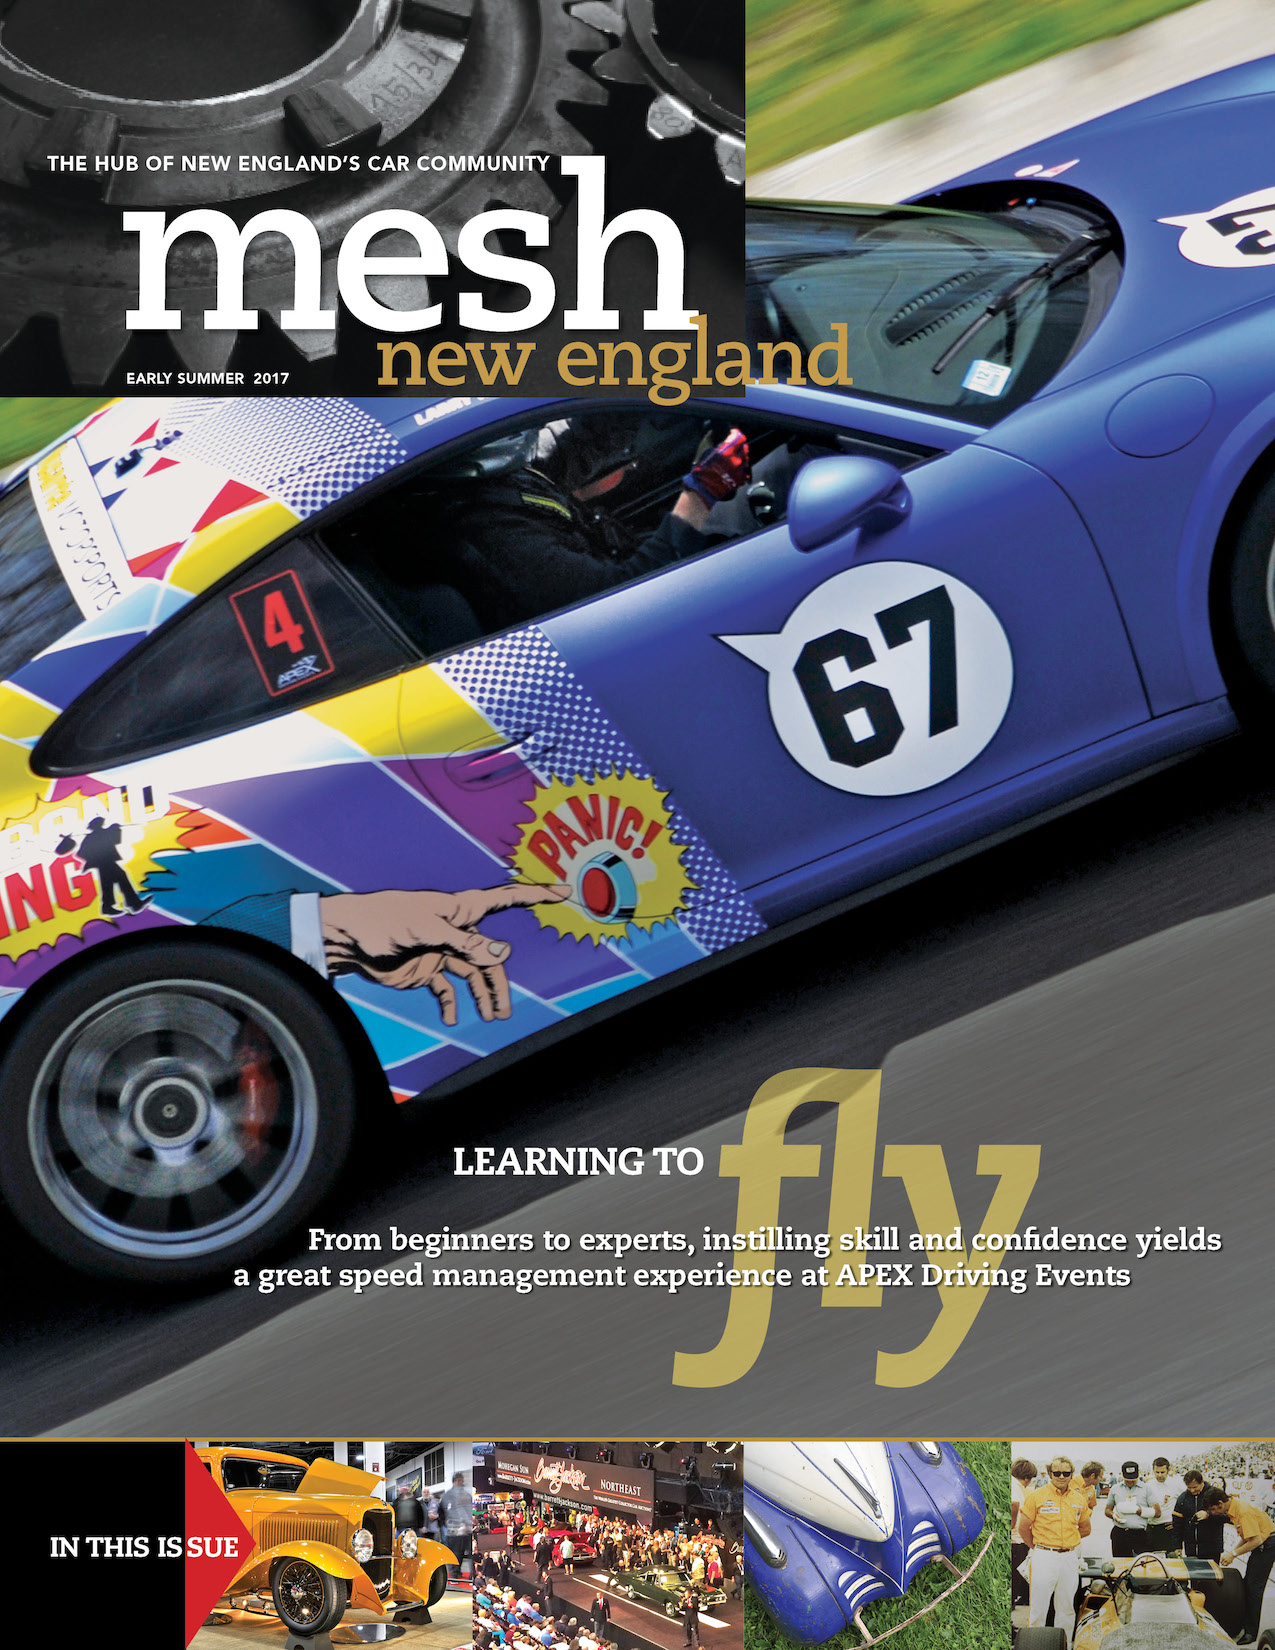 Early Summer 2017 cover of mesh new england magazine with a blue car featured on the cover.jpg